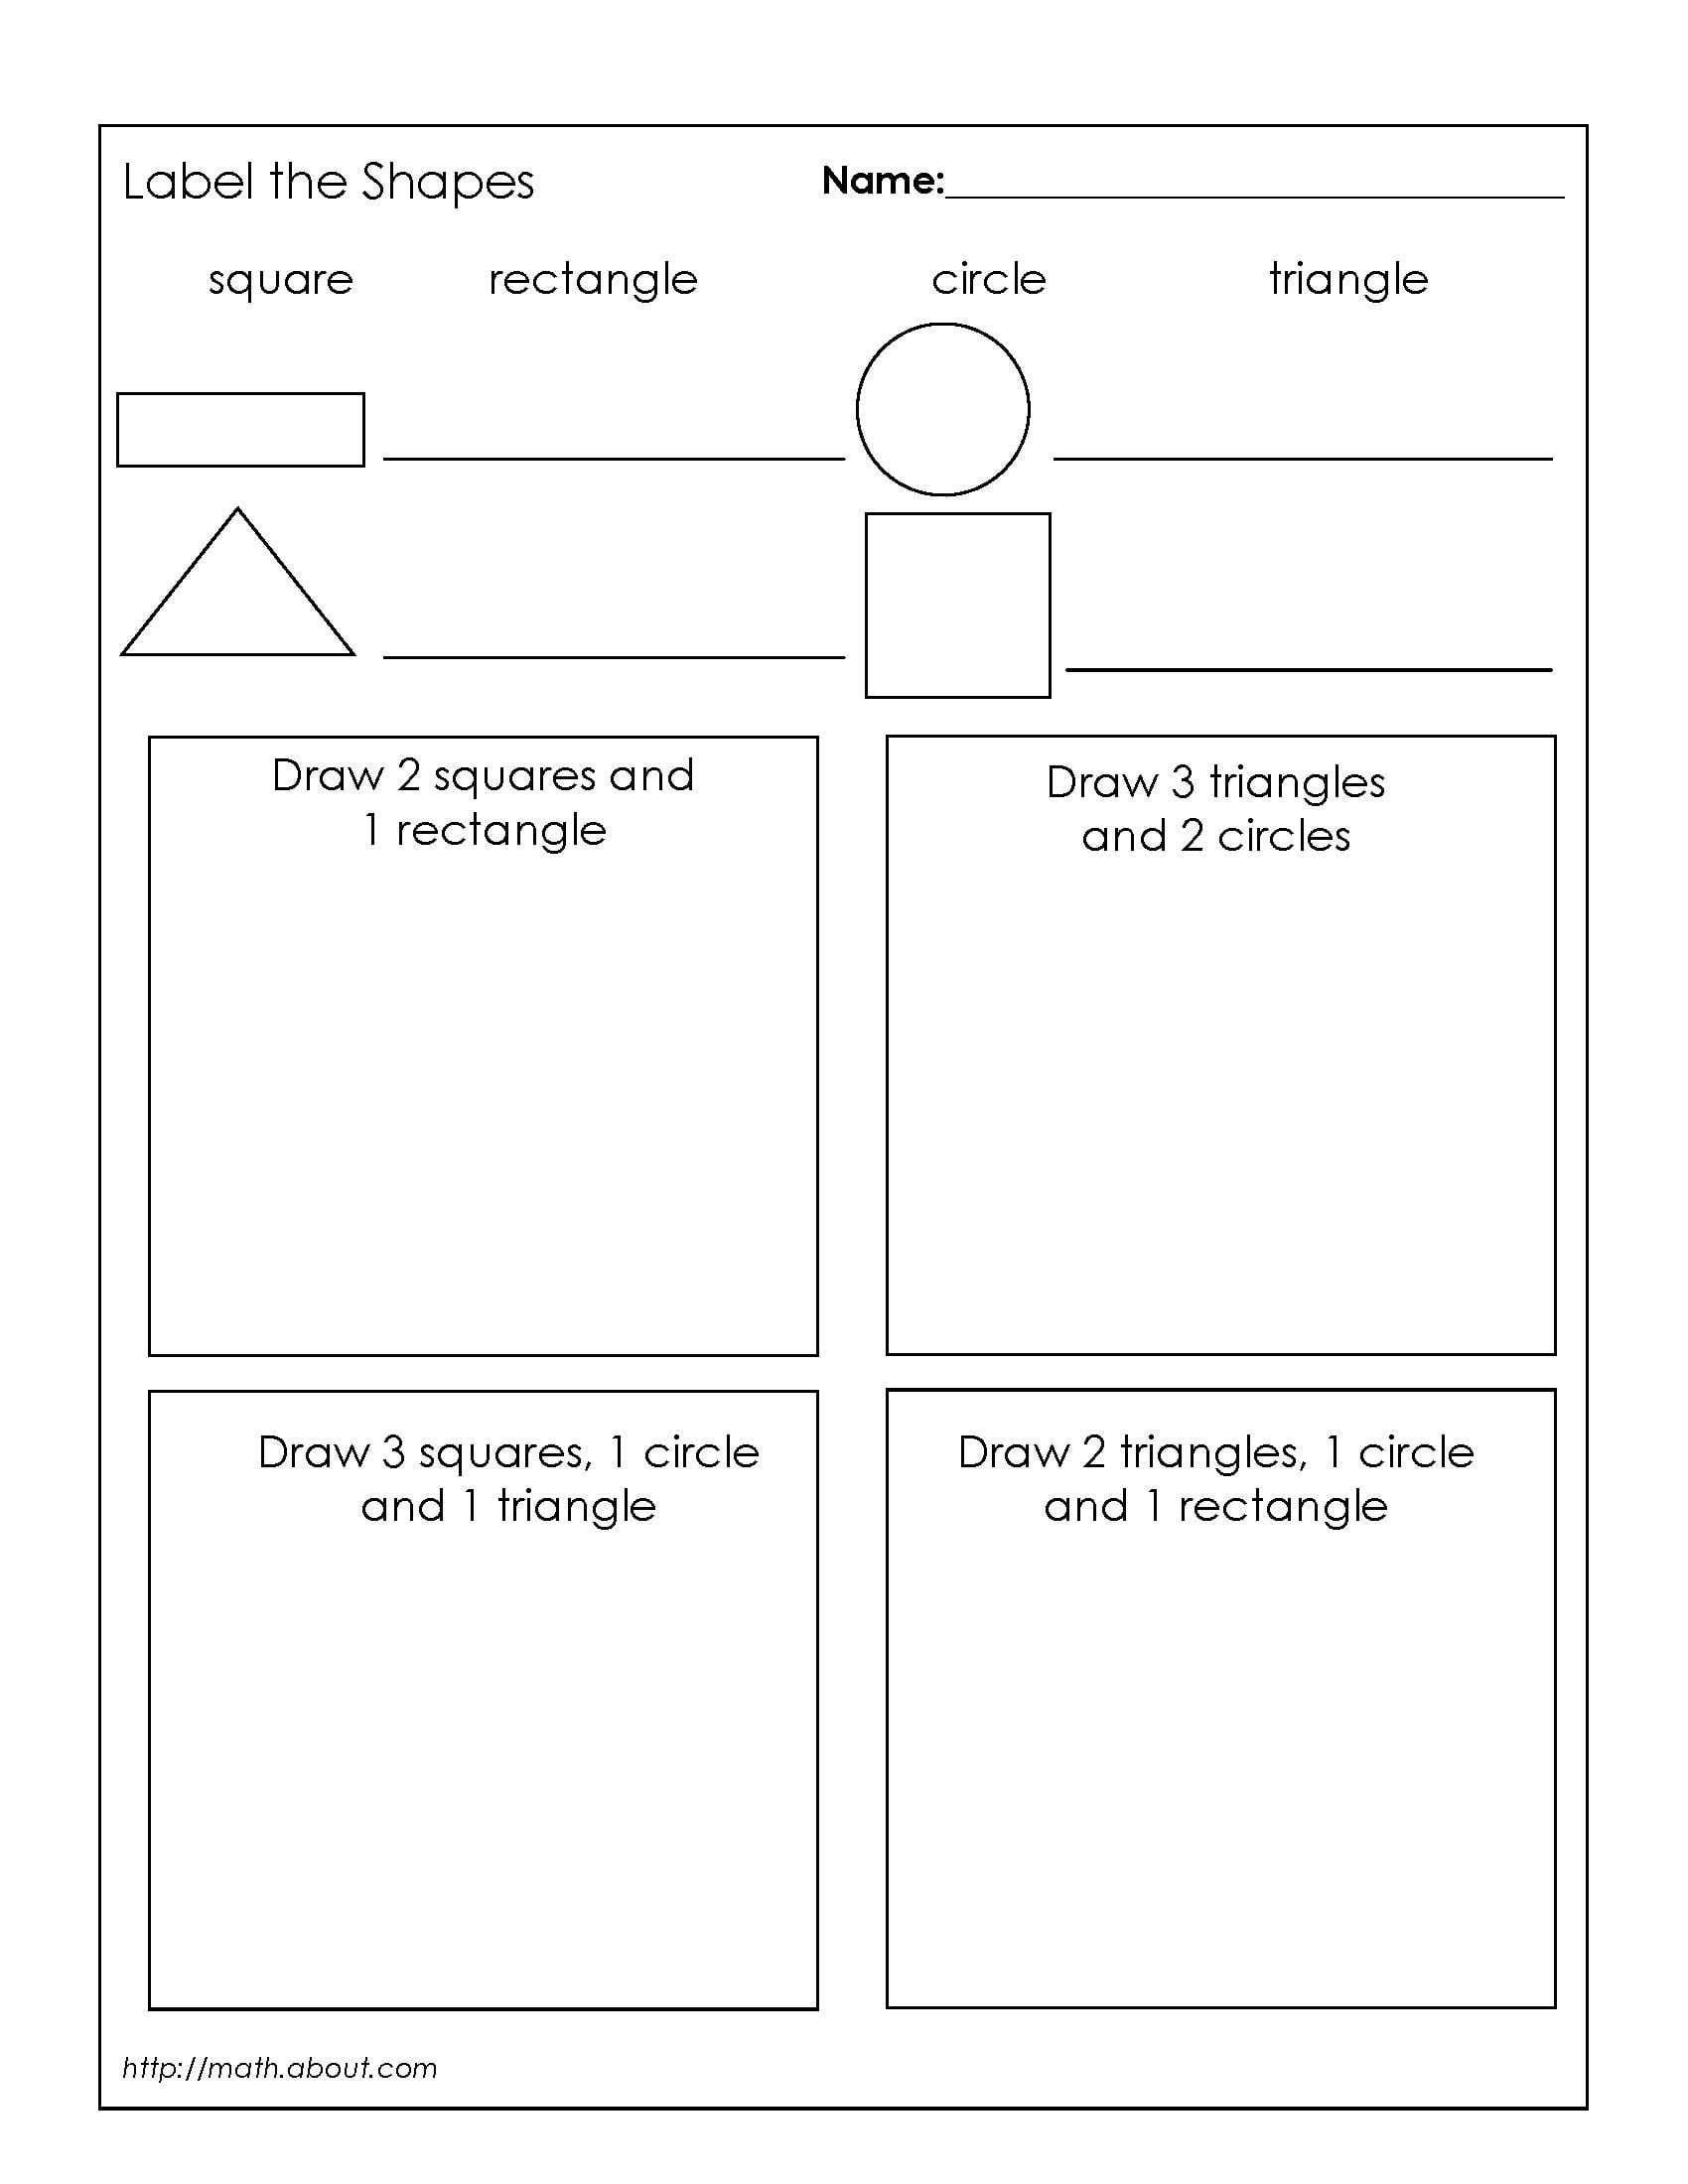 Second Grade Geometry Worksheets Grade 1 Geometry Worksheets First Grade Math Geometry